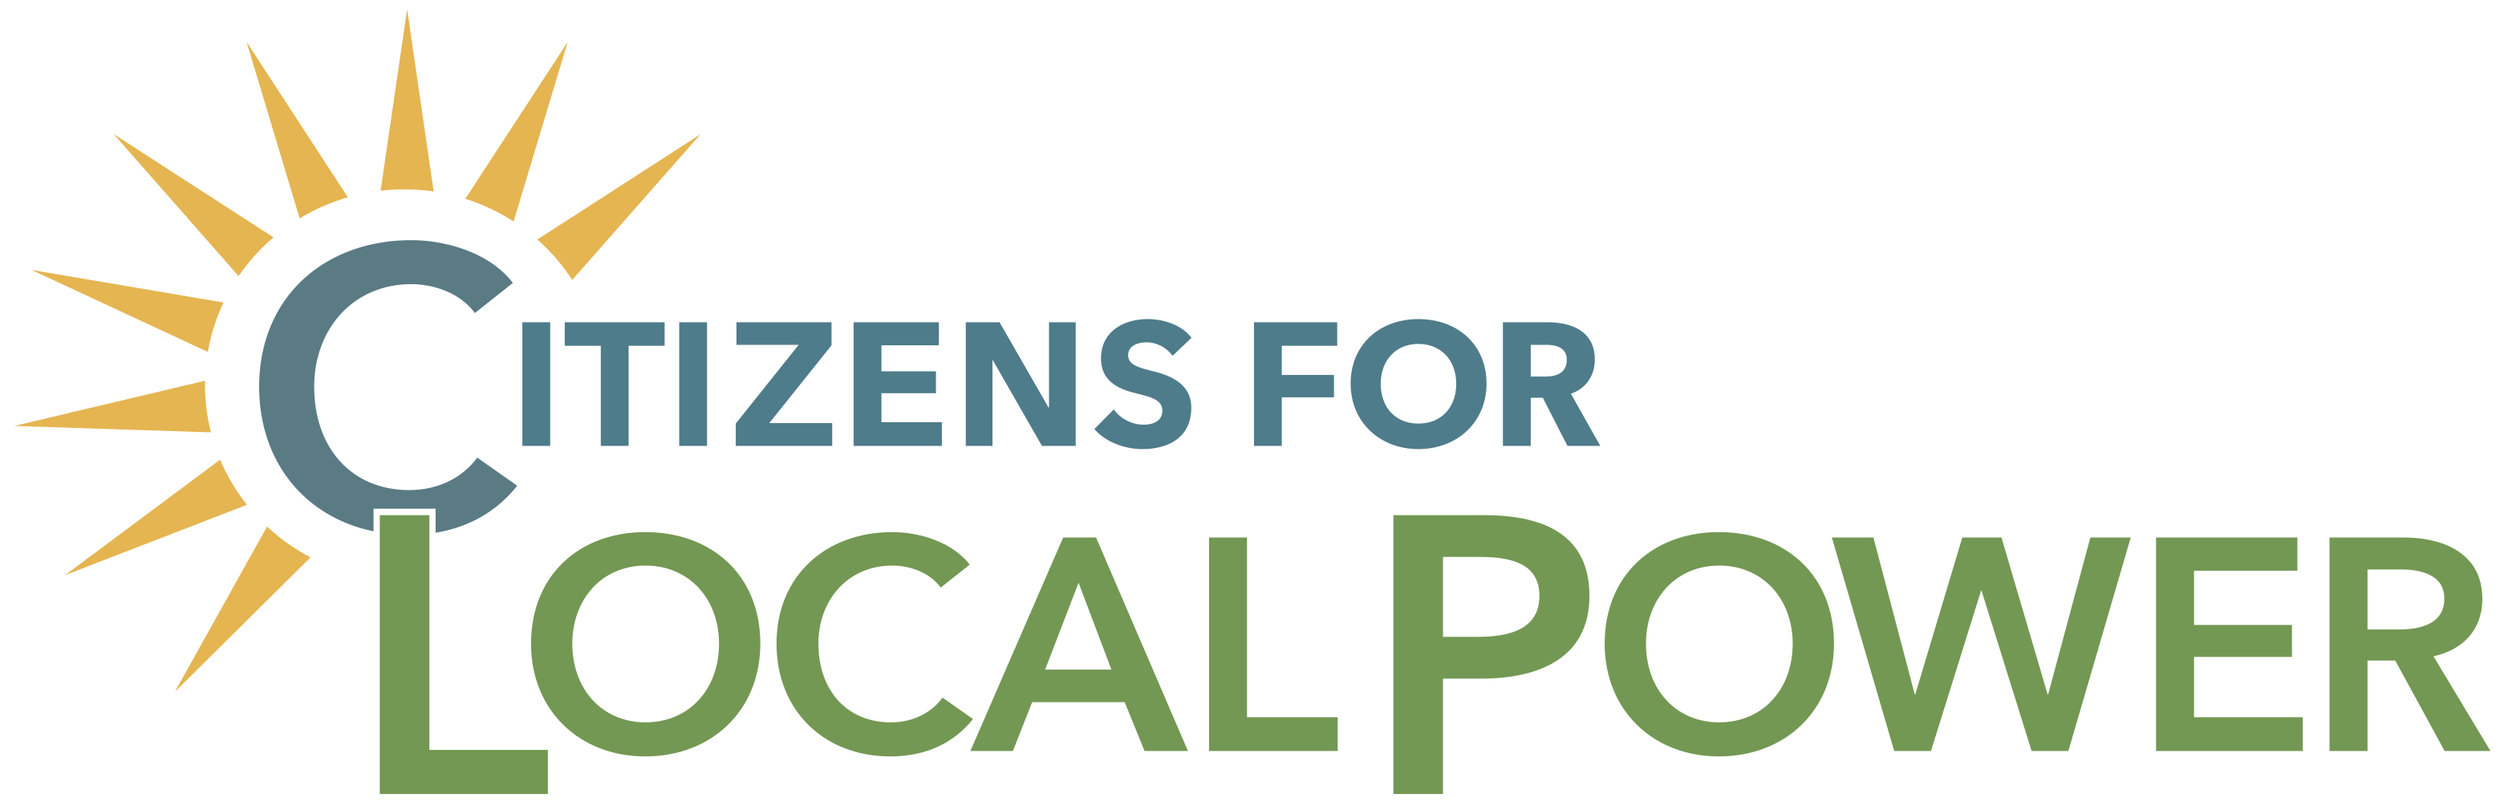 Citizens for Local Power